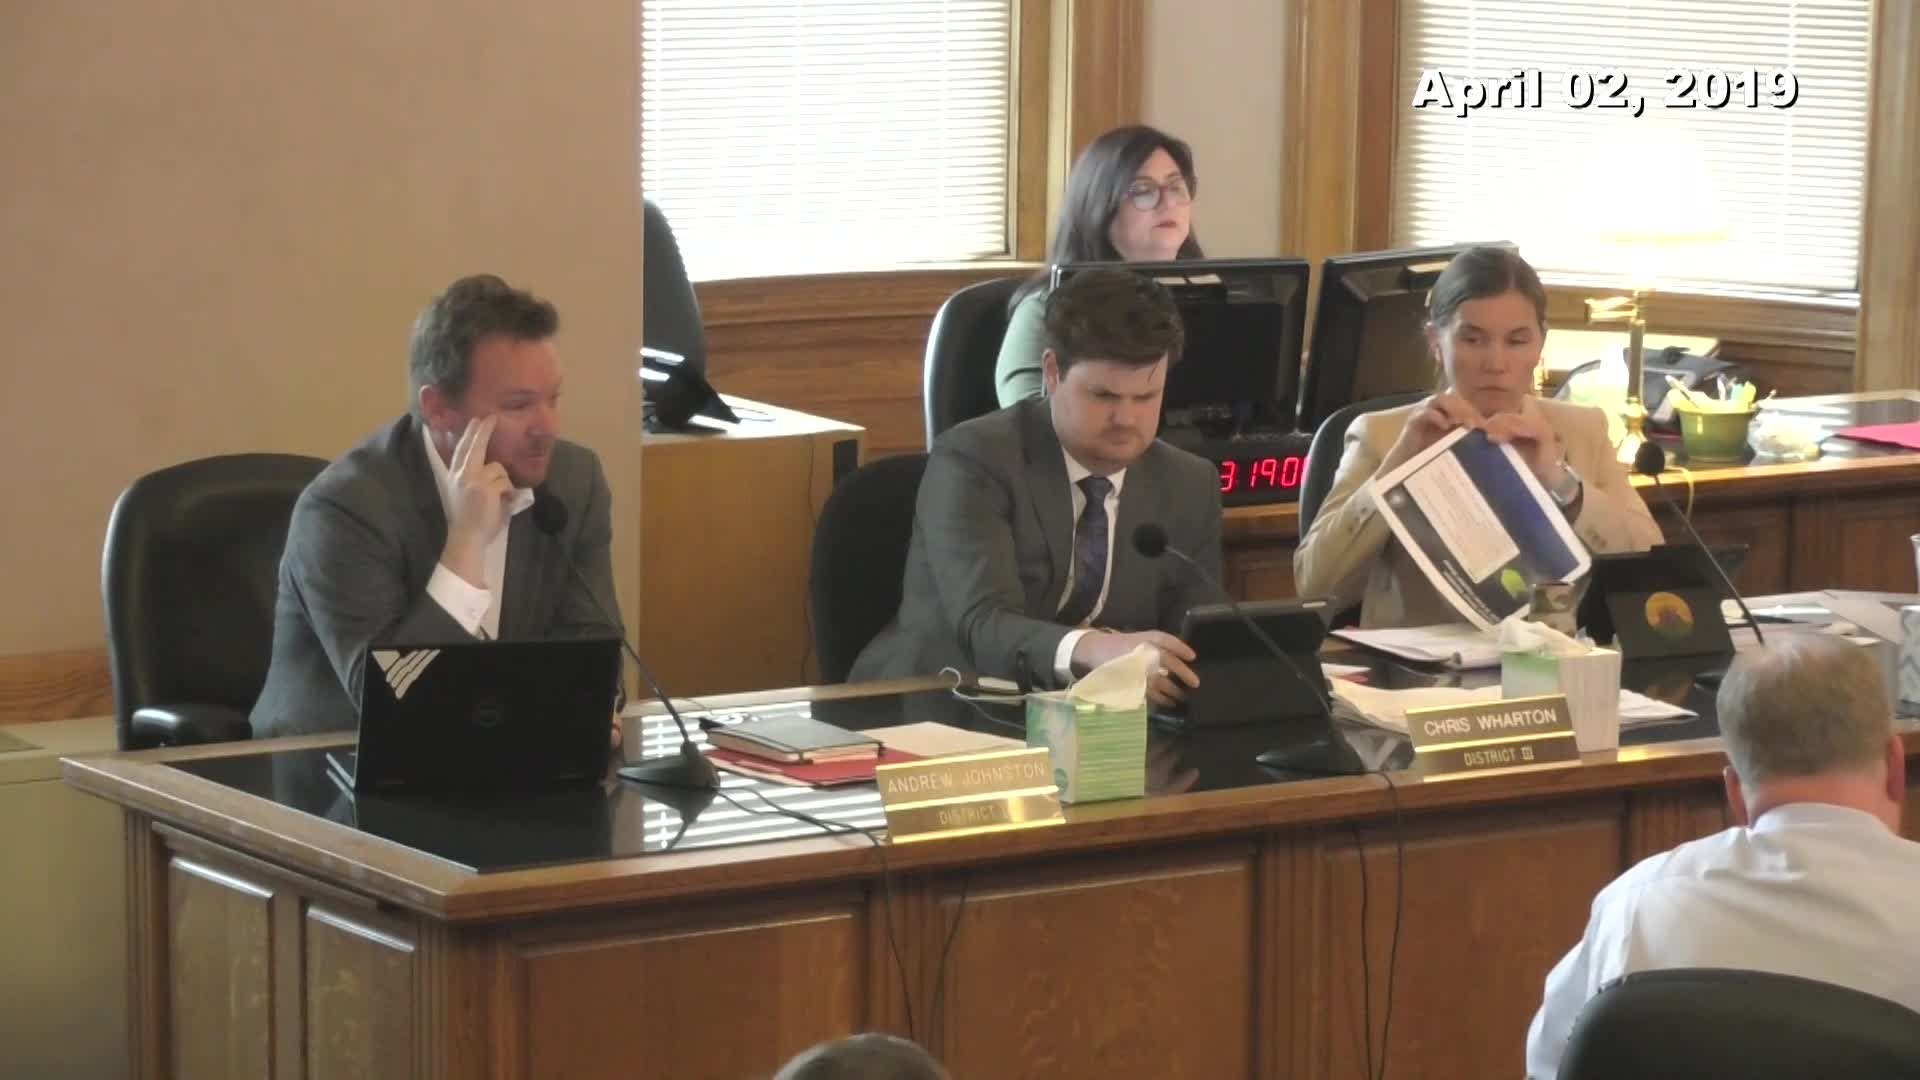 City Council Work Session - 04/02/2019